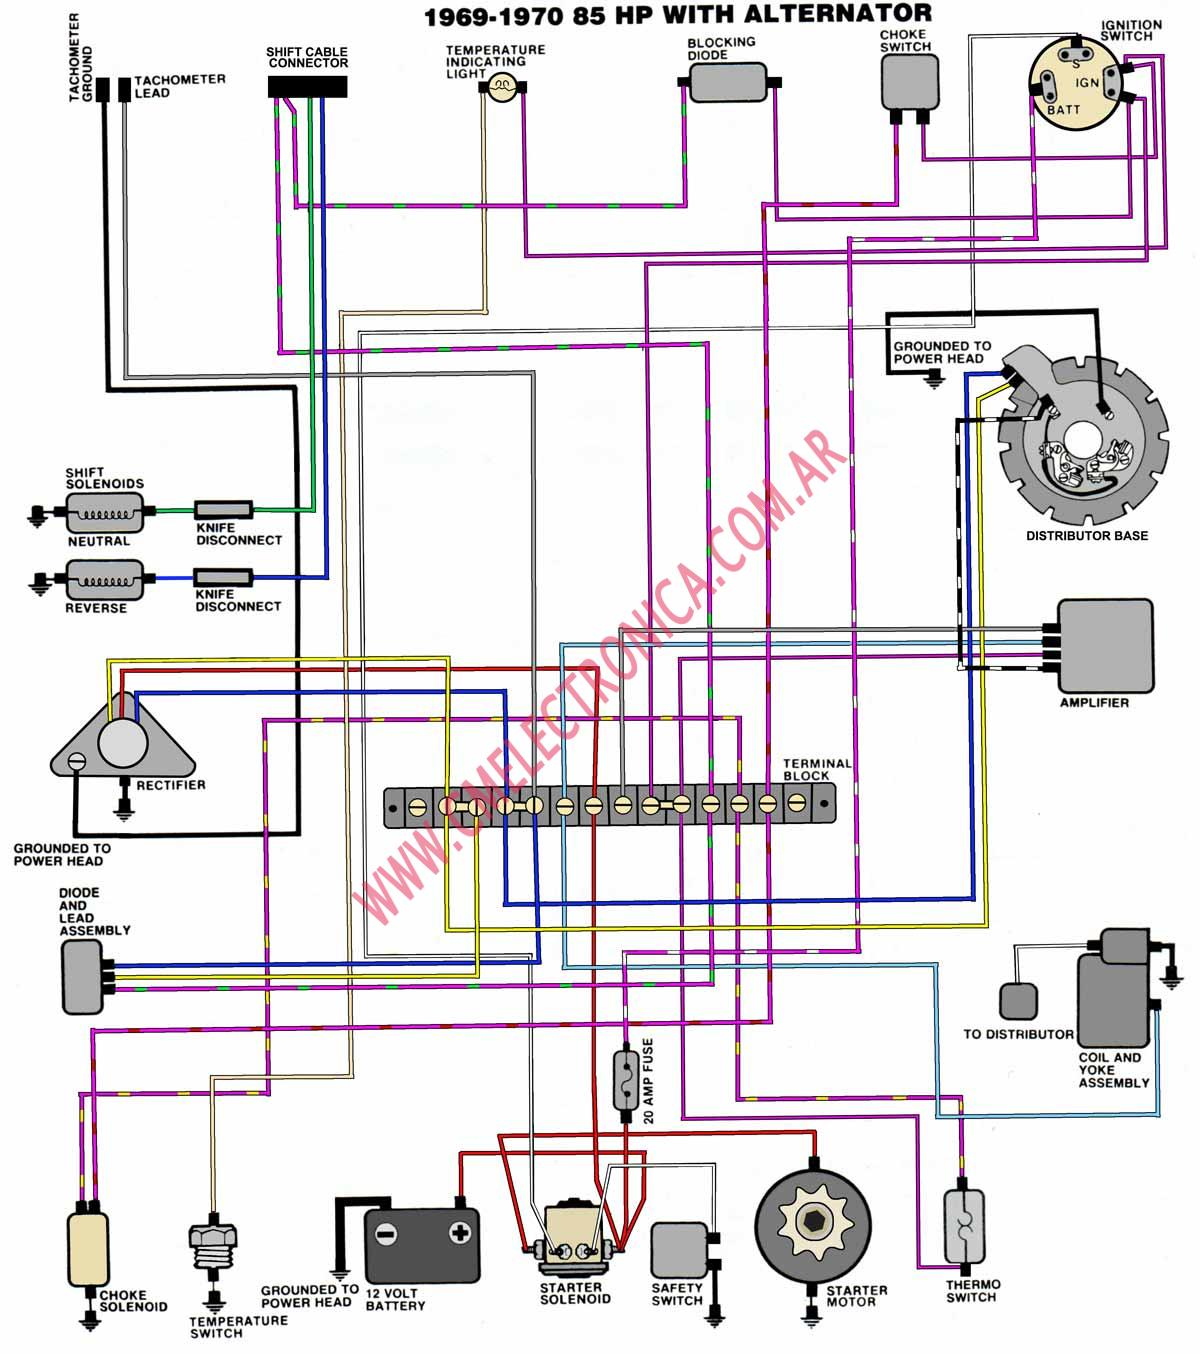 evinrude_johnson 69_70_v4 yamaha outboard wiring diagrams the wiring diagram readingrat net ttr 225 wiring diagram at bayanpartner.co